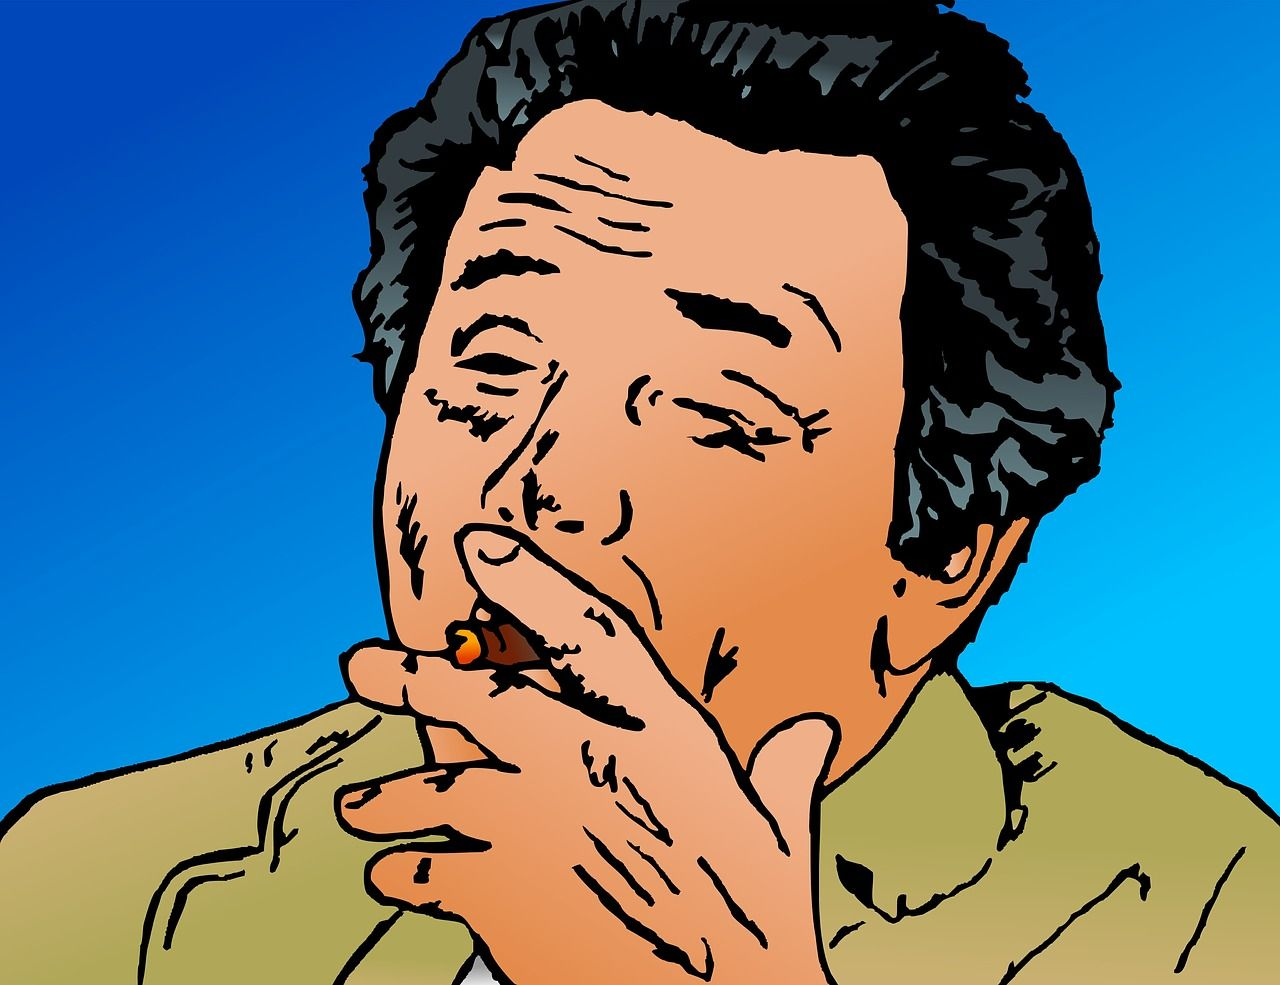 Peter Falk als Columbo